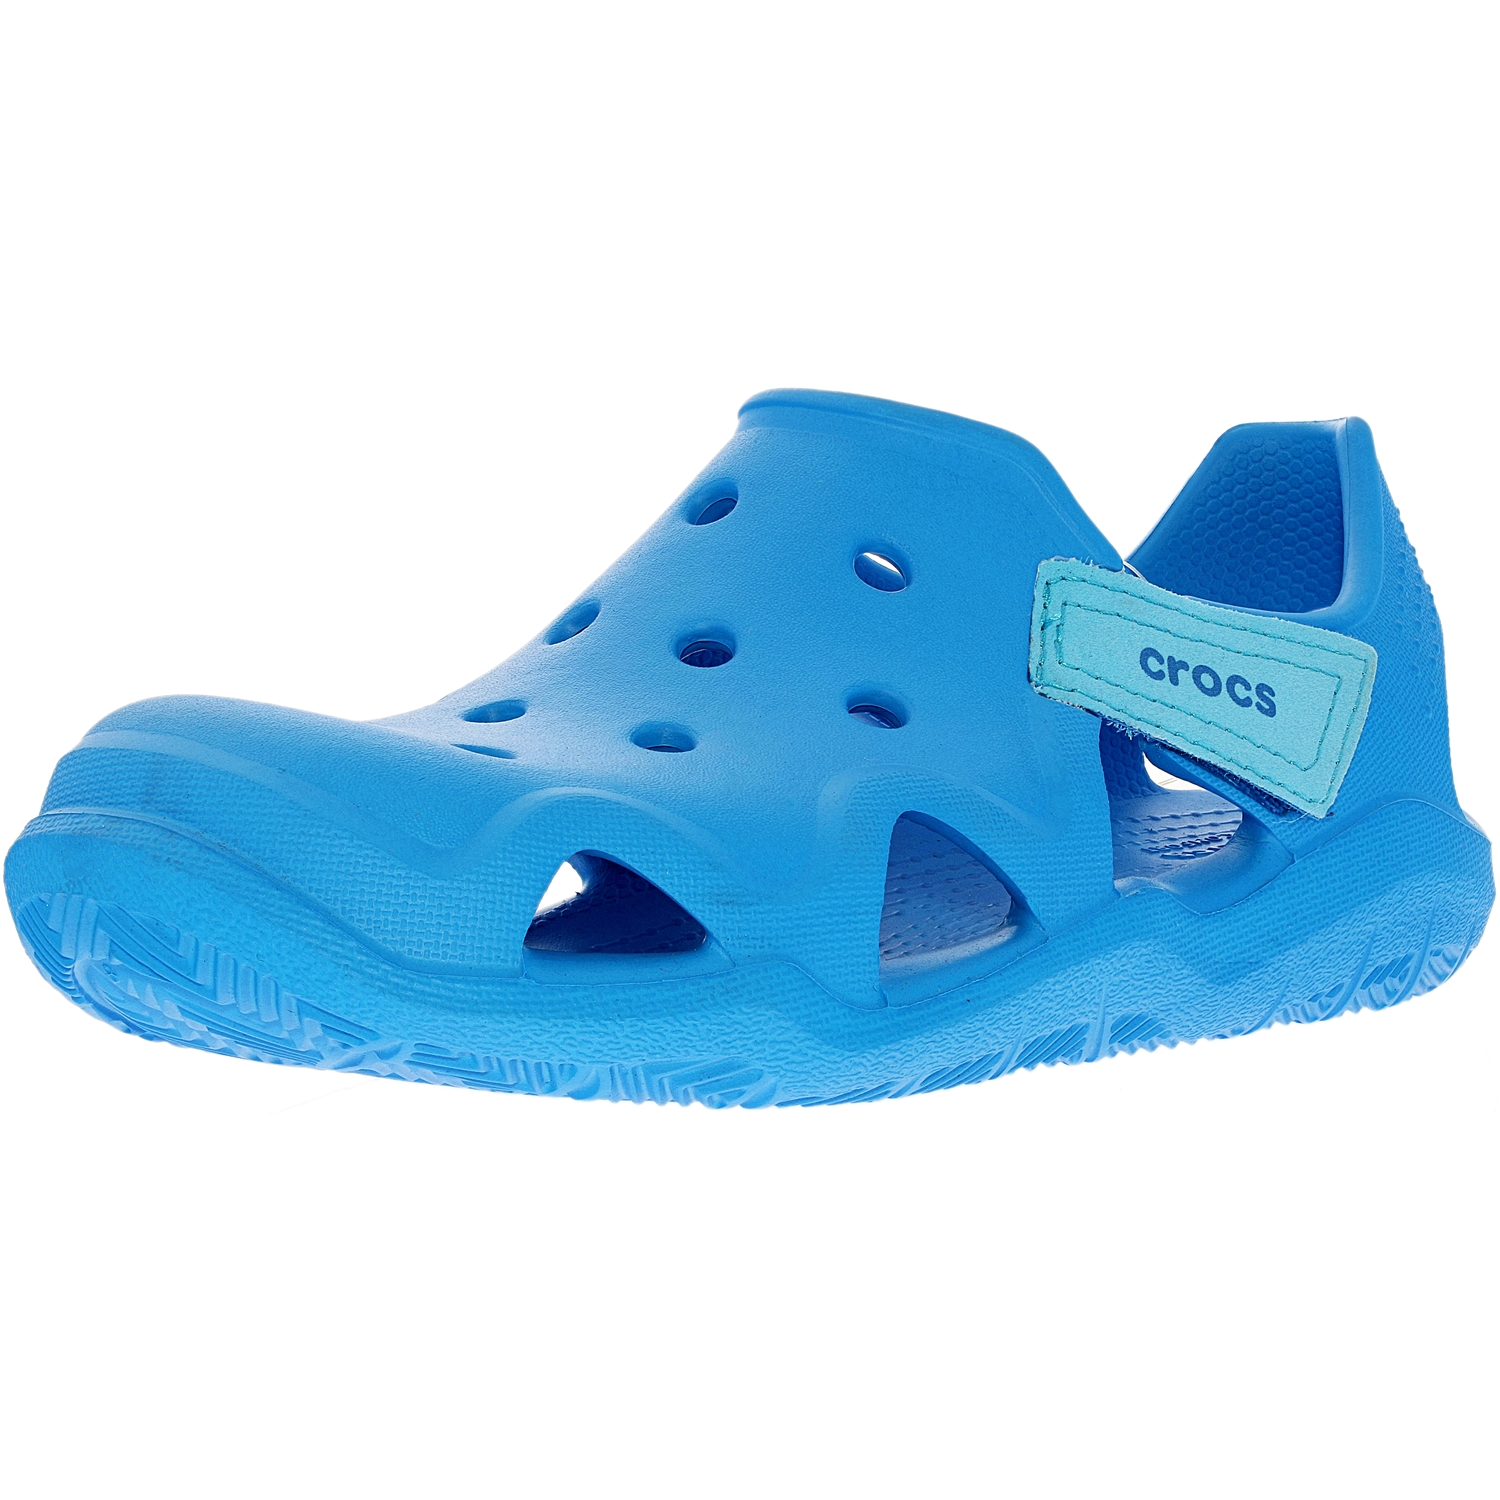 Crocs Boy's Swiftwater Wave Ankle-High Flat Shoe by Crocs